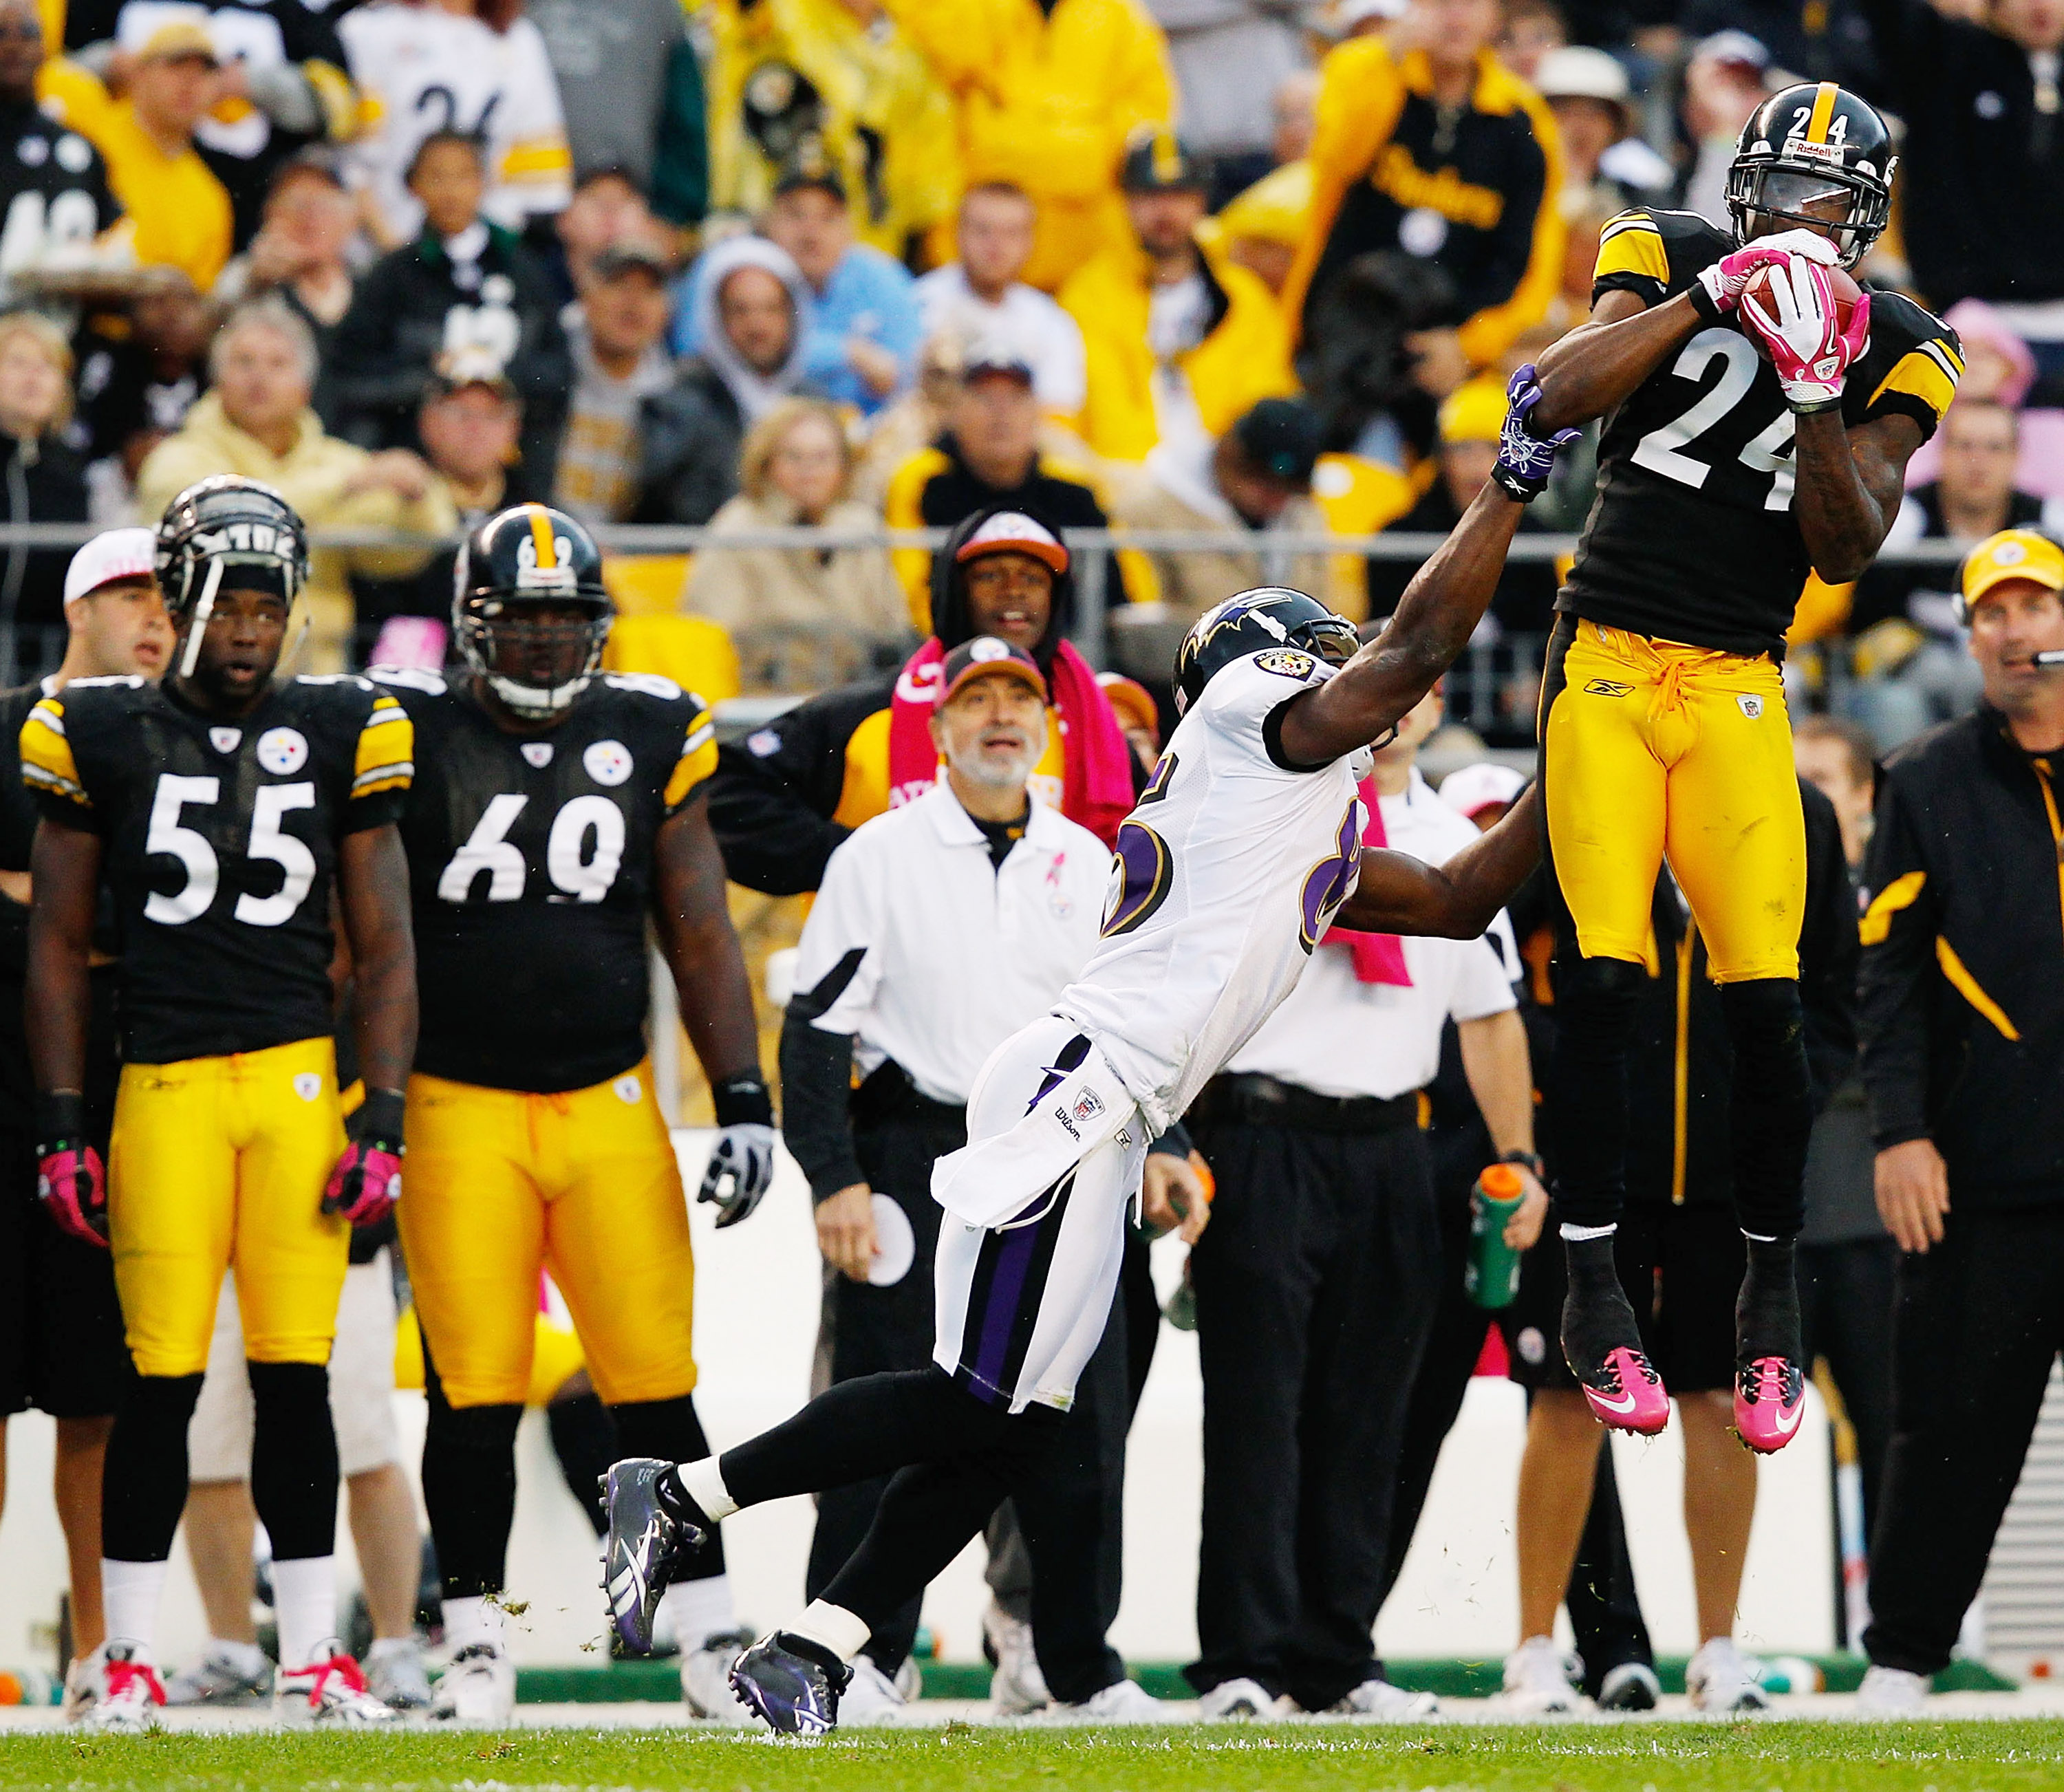 PITTSBURGH - OCTOBER 03:  Ike Taylor #24 of the Pittsburgh Steelers intercepts a pass from Joe Flacco #5 in front of Derrick Mason #85 of the Baltimore Ravens during the game on October 3, 2010 at Heinz Field in Pittsburgh, Pennsylvania.  (Photo by Jared